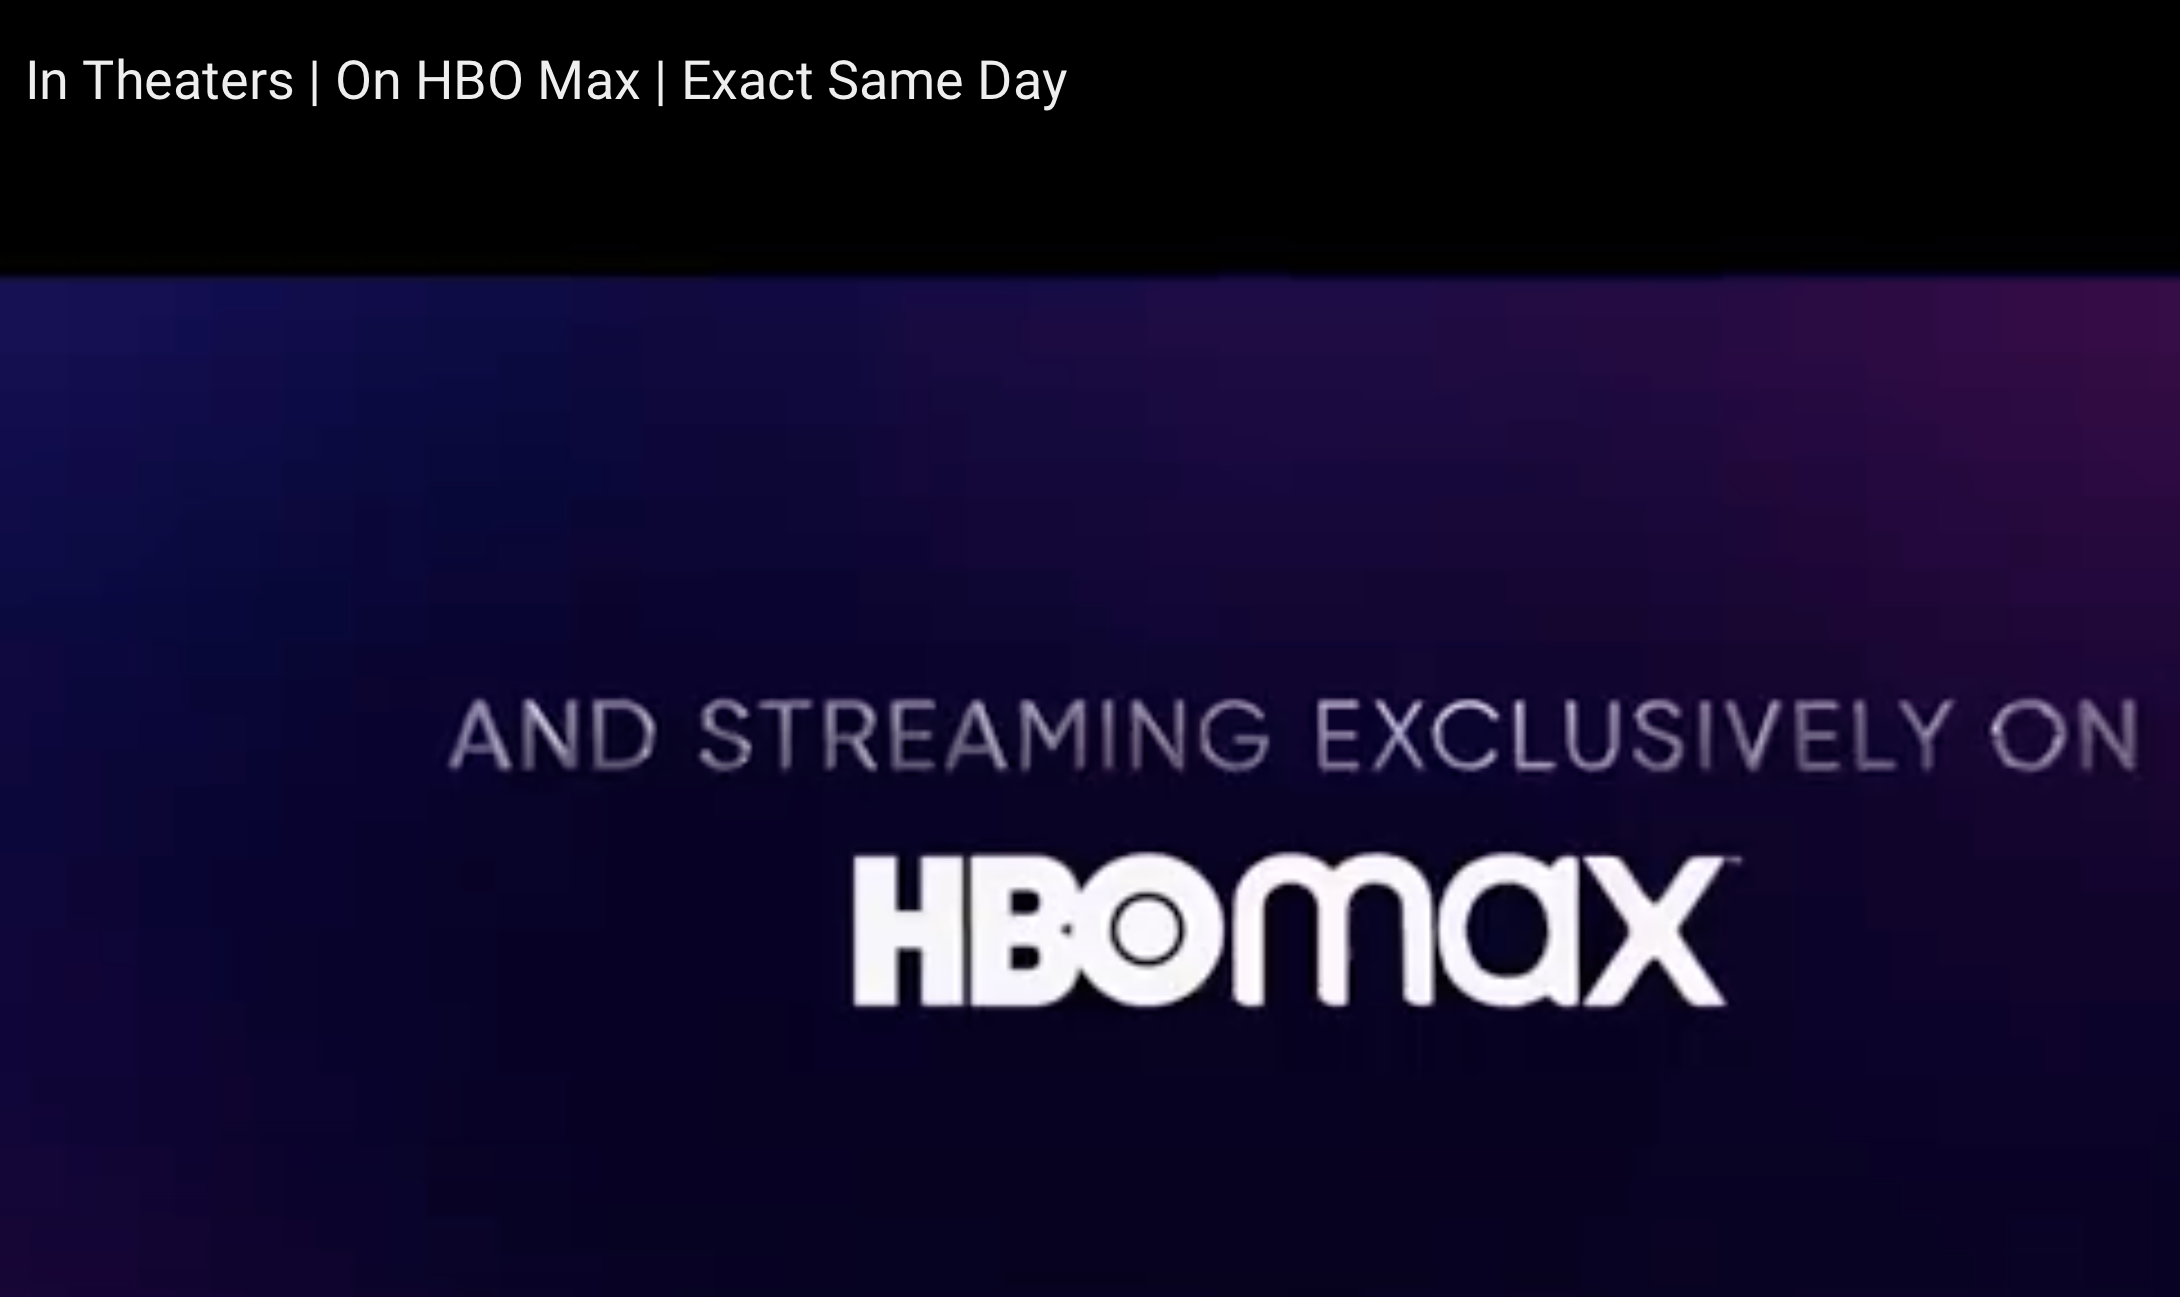 Cover image for Blockbuster disruption comes to the streaming wars courtesy of HBO Max